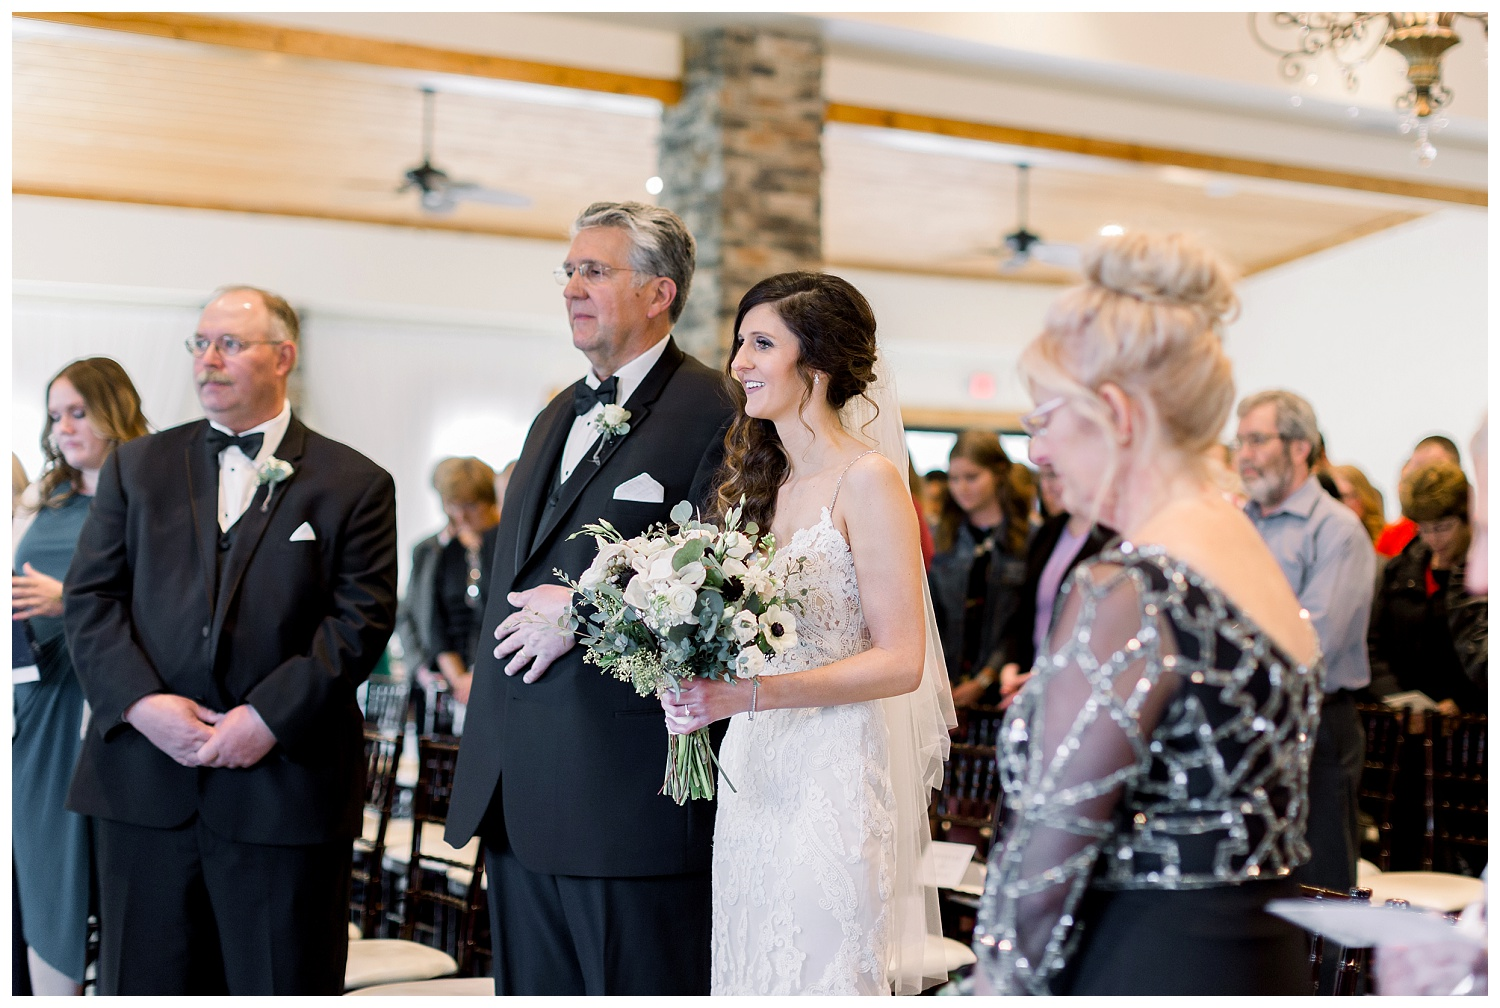 Willow-Creek-Wedding-Photography-Kansas-Elizabeth-Ladean-S+D0330-photo-_7068.jpg